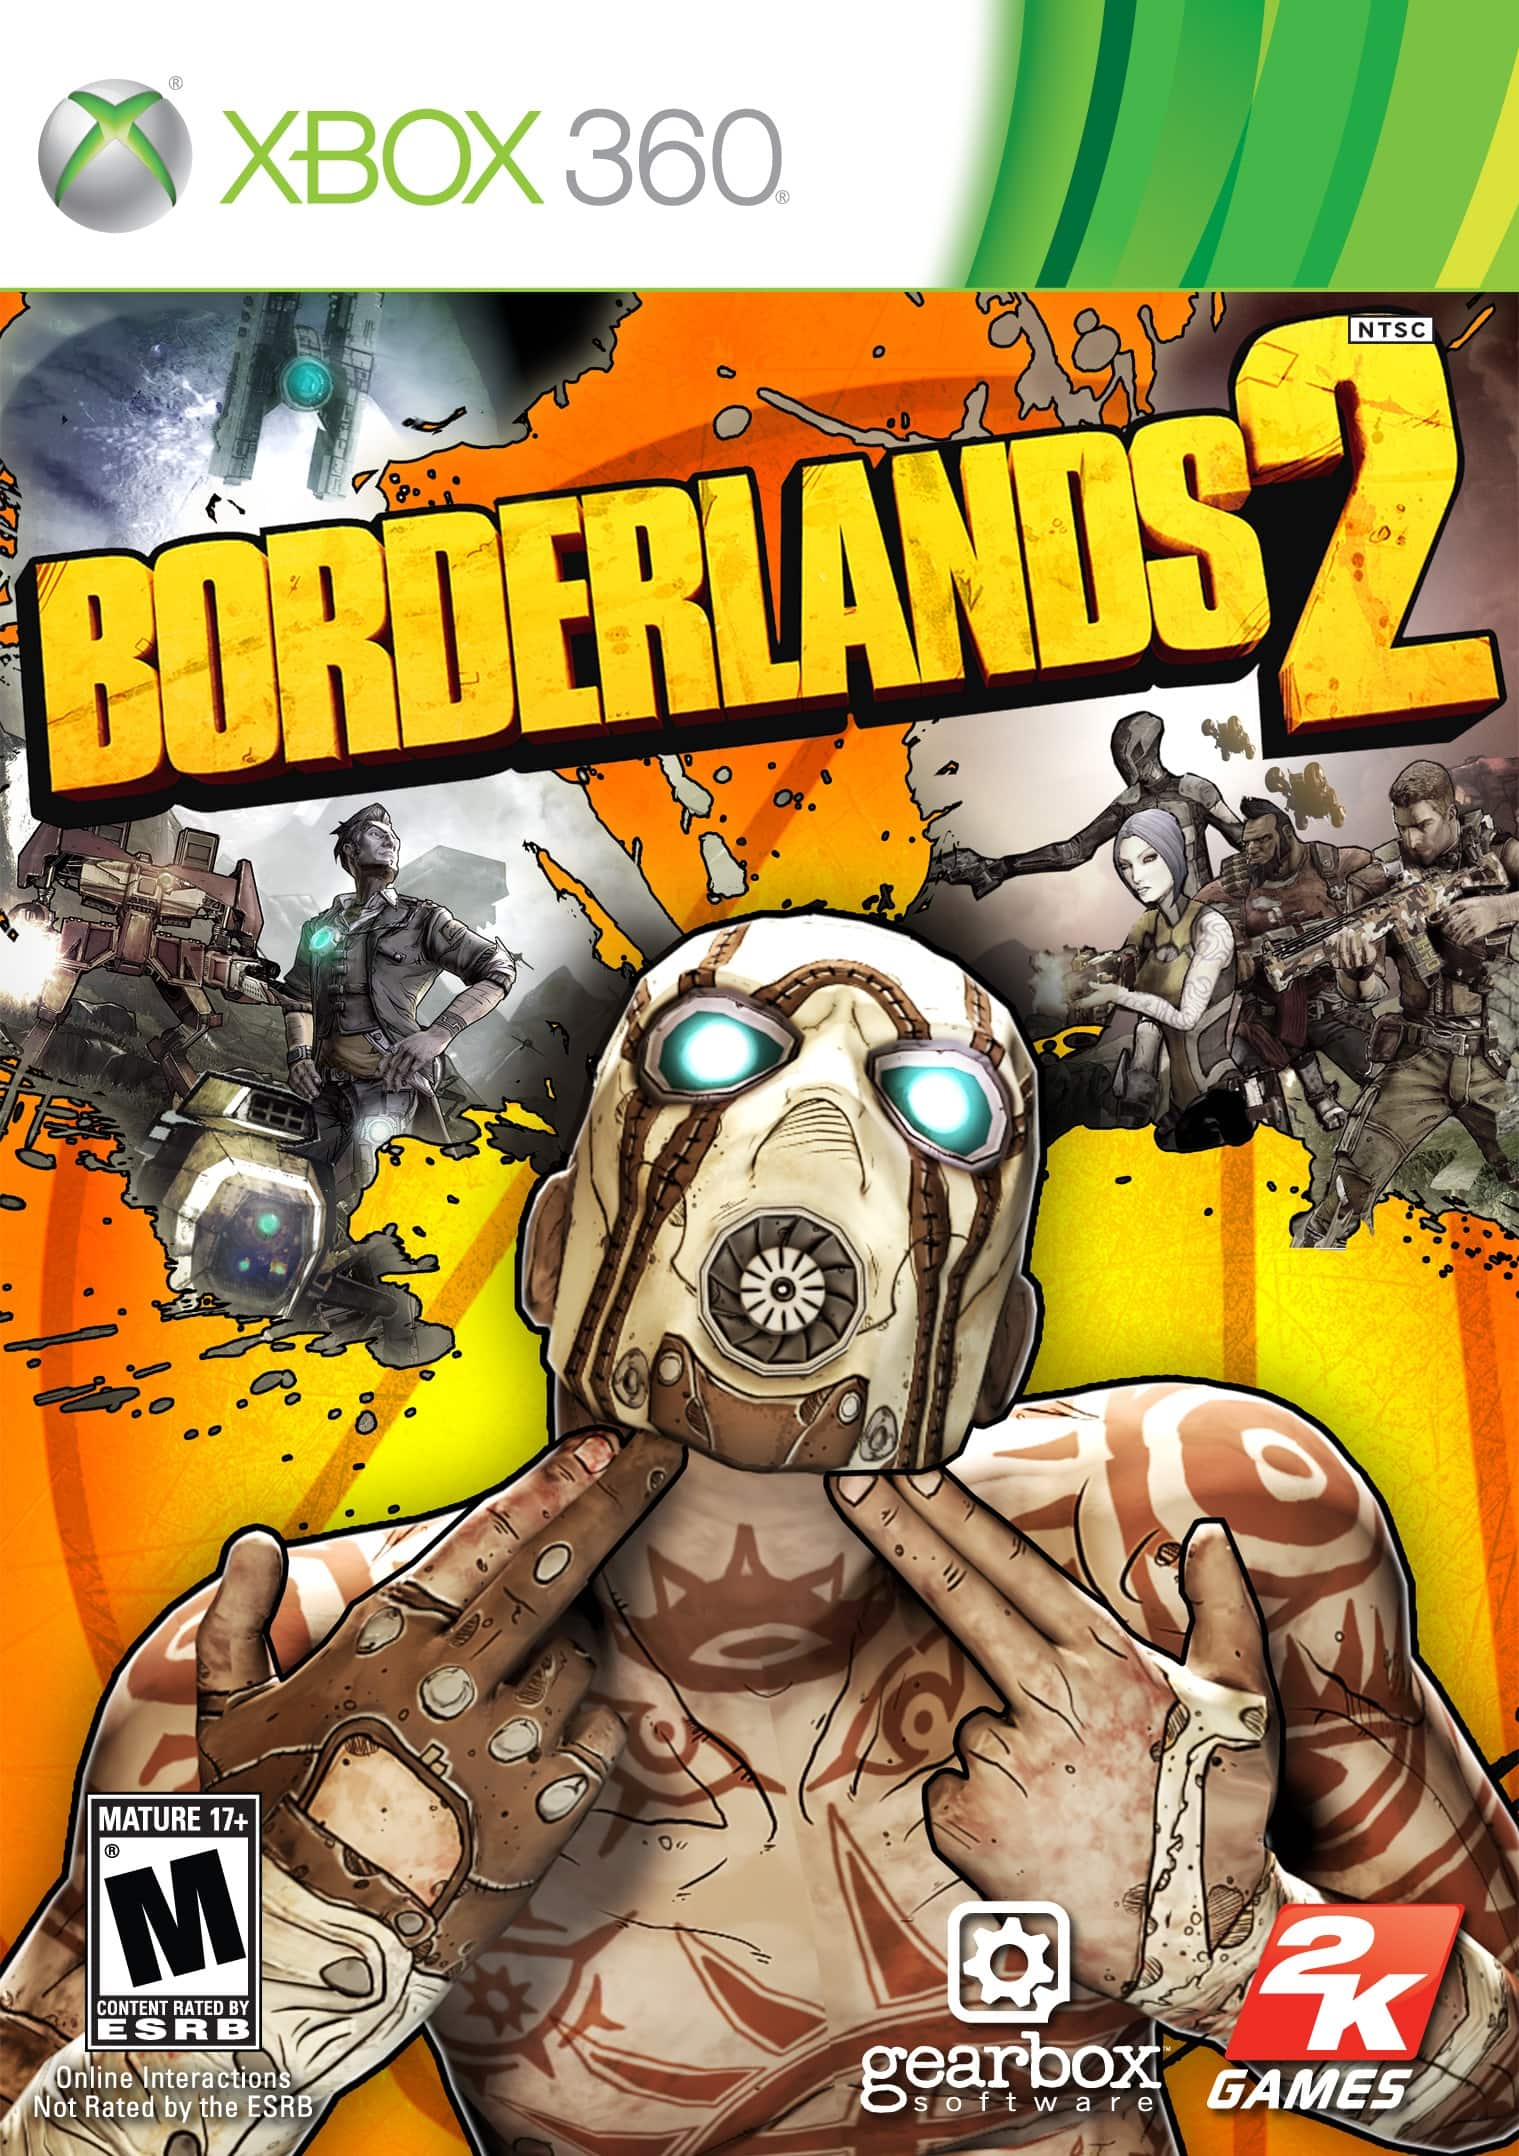 Xbox 360 Digital Download Games: Borderlands 2, Tomb Raider or Gunstringer $3.75